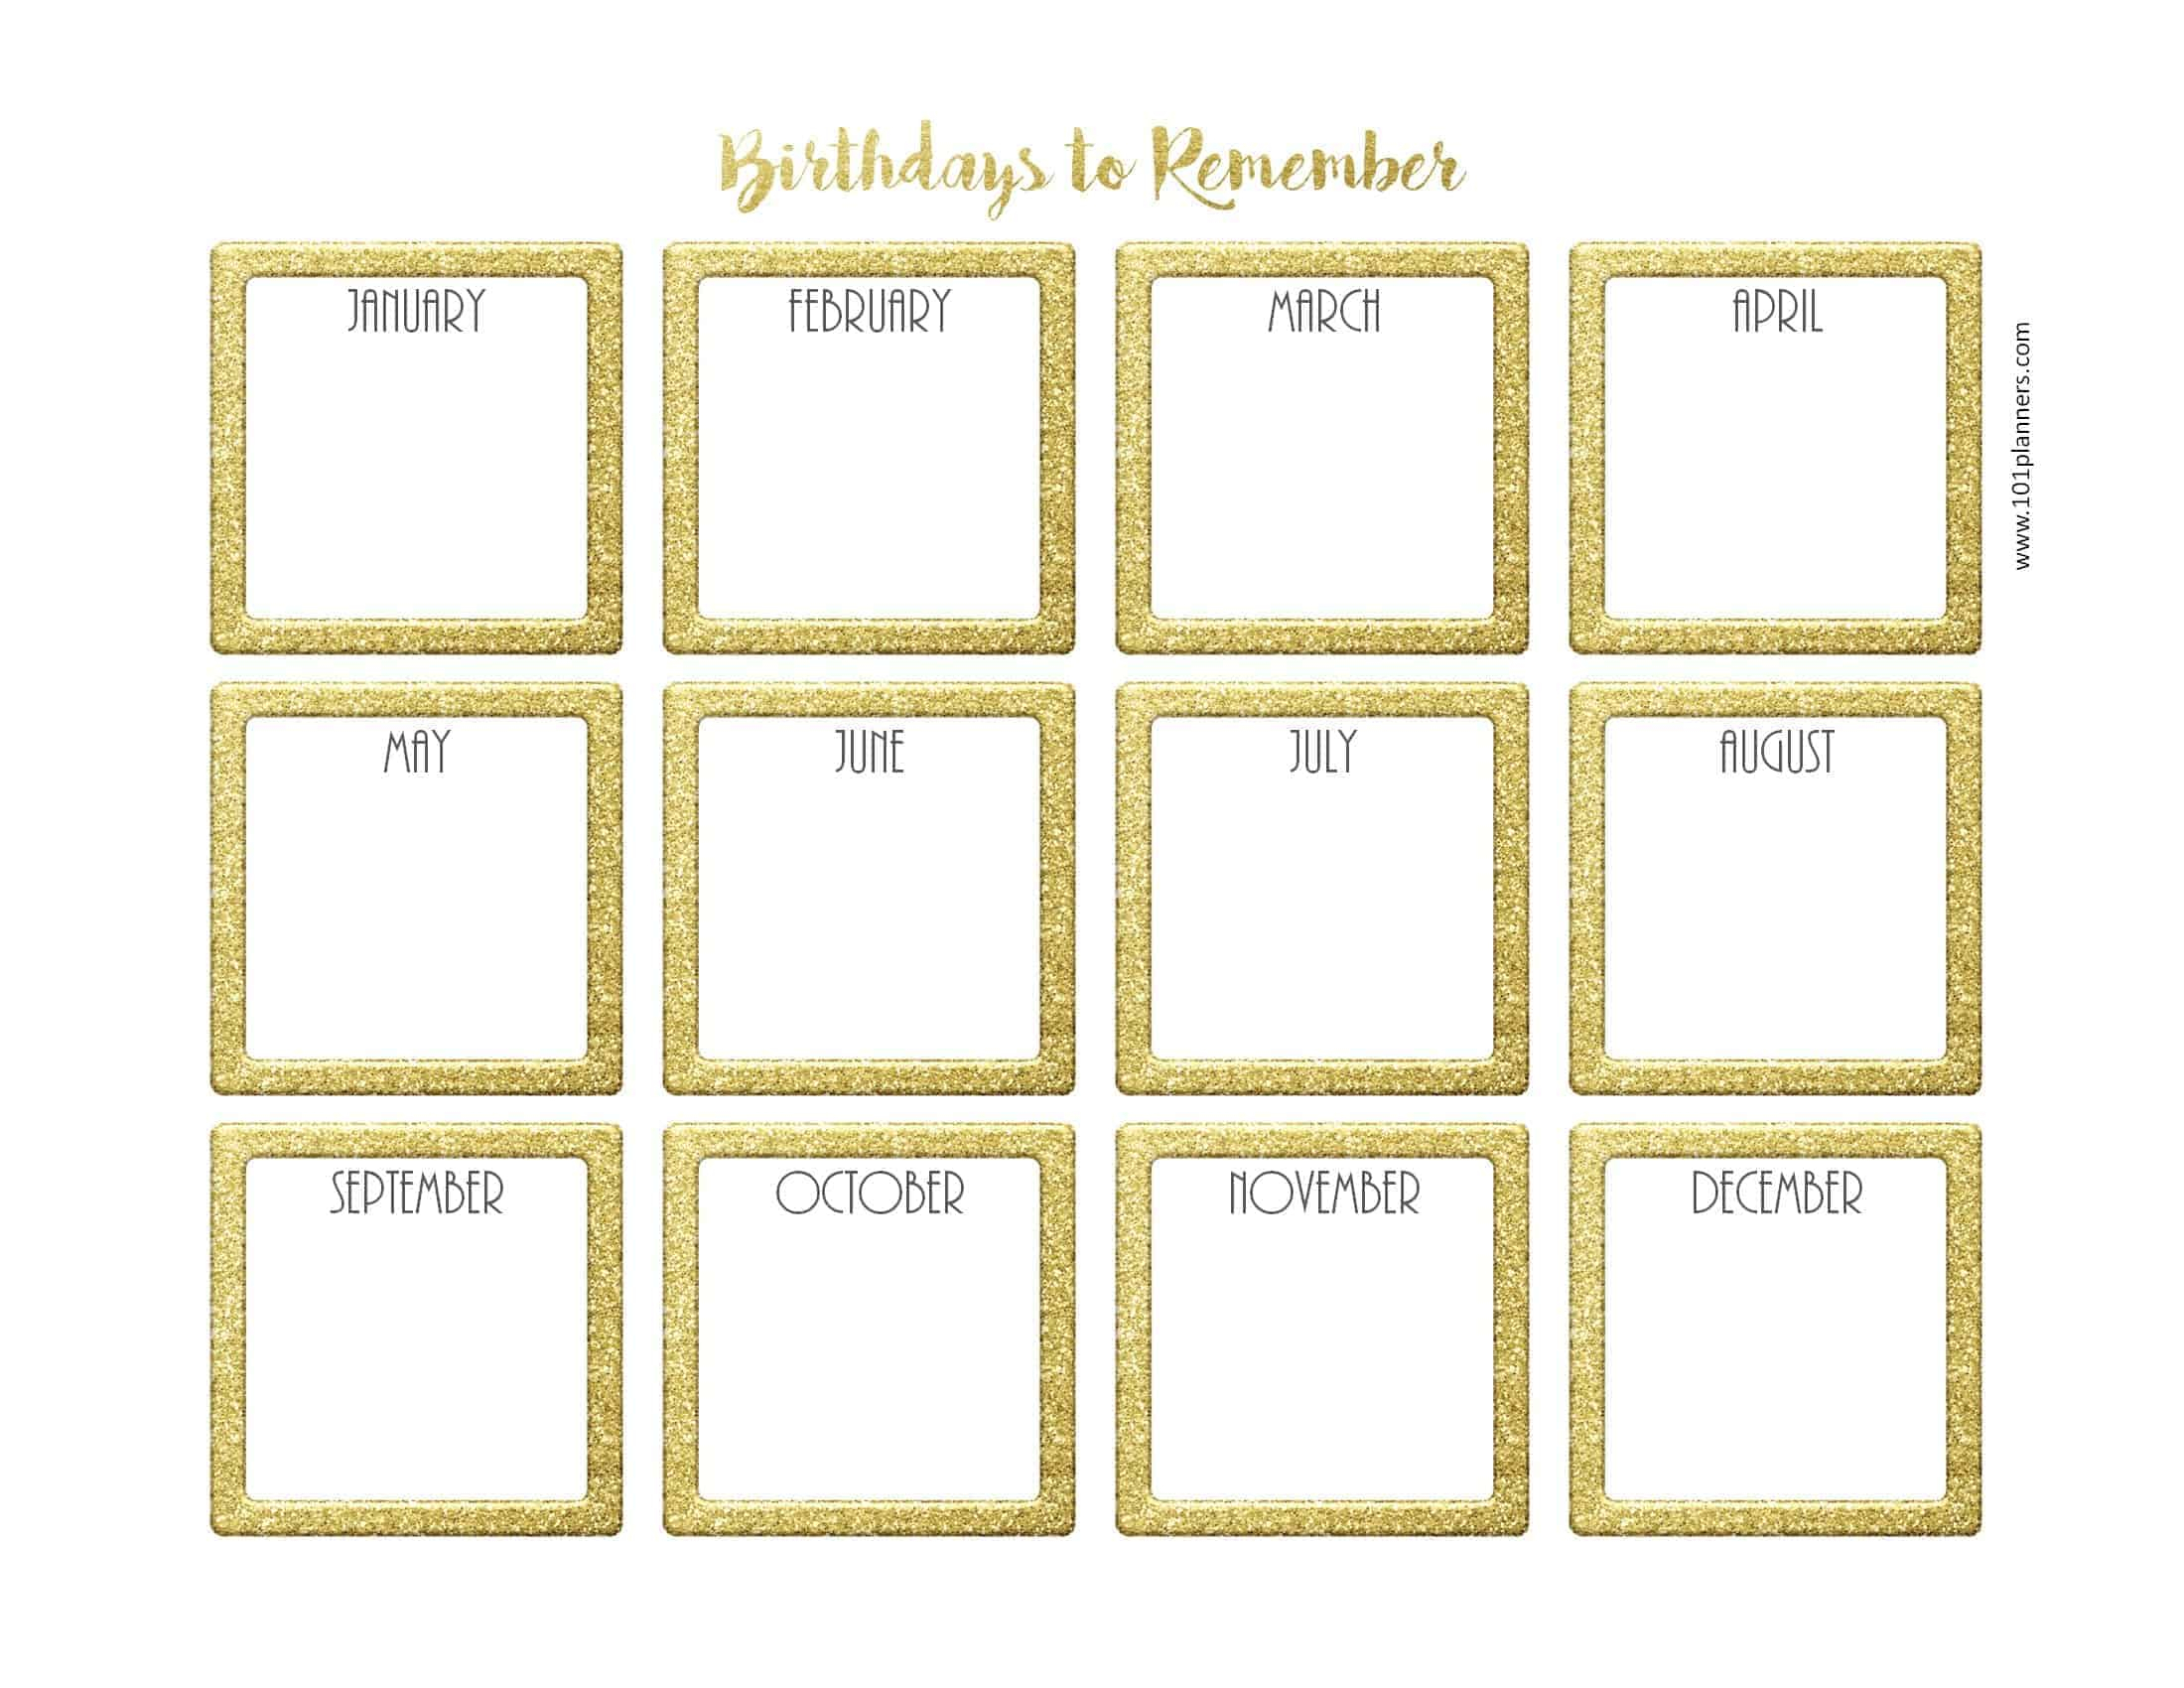 Birthday Calendar Template throughout Yearly Birthday Calendar Template